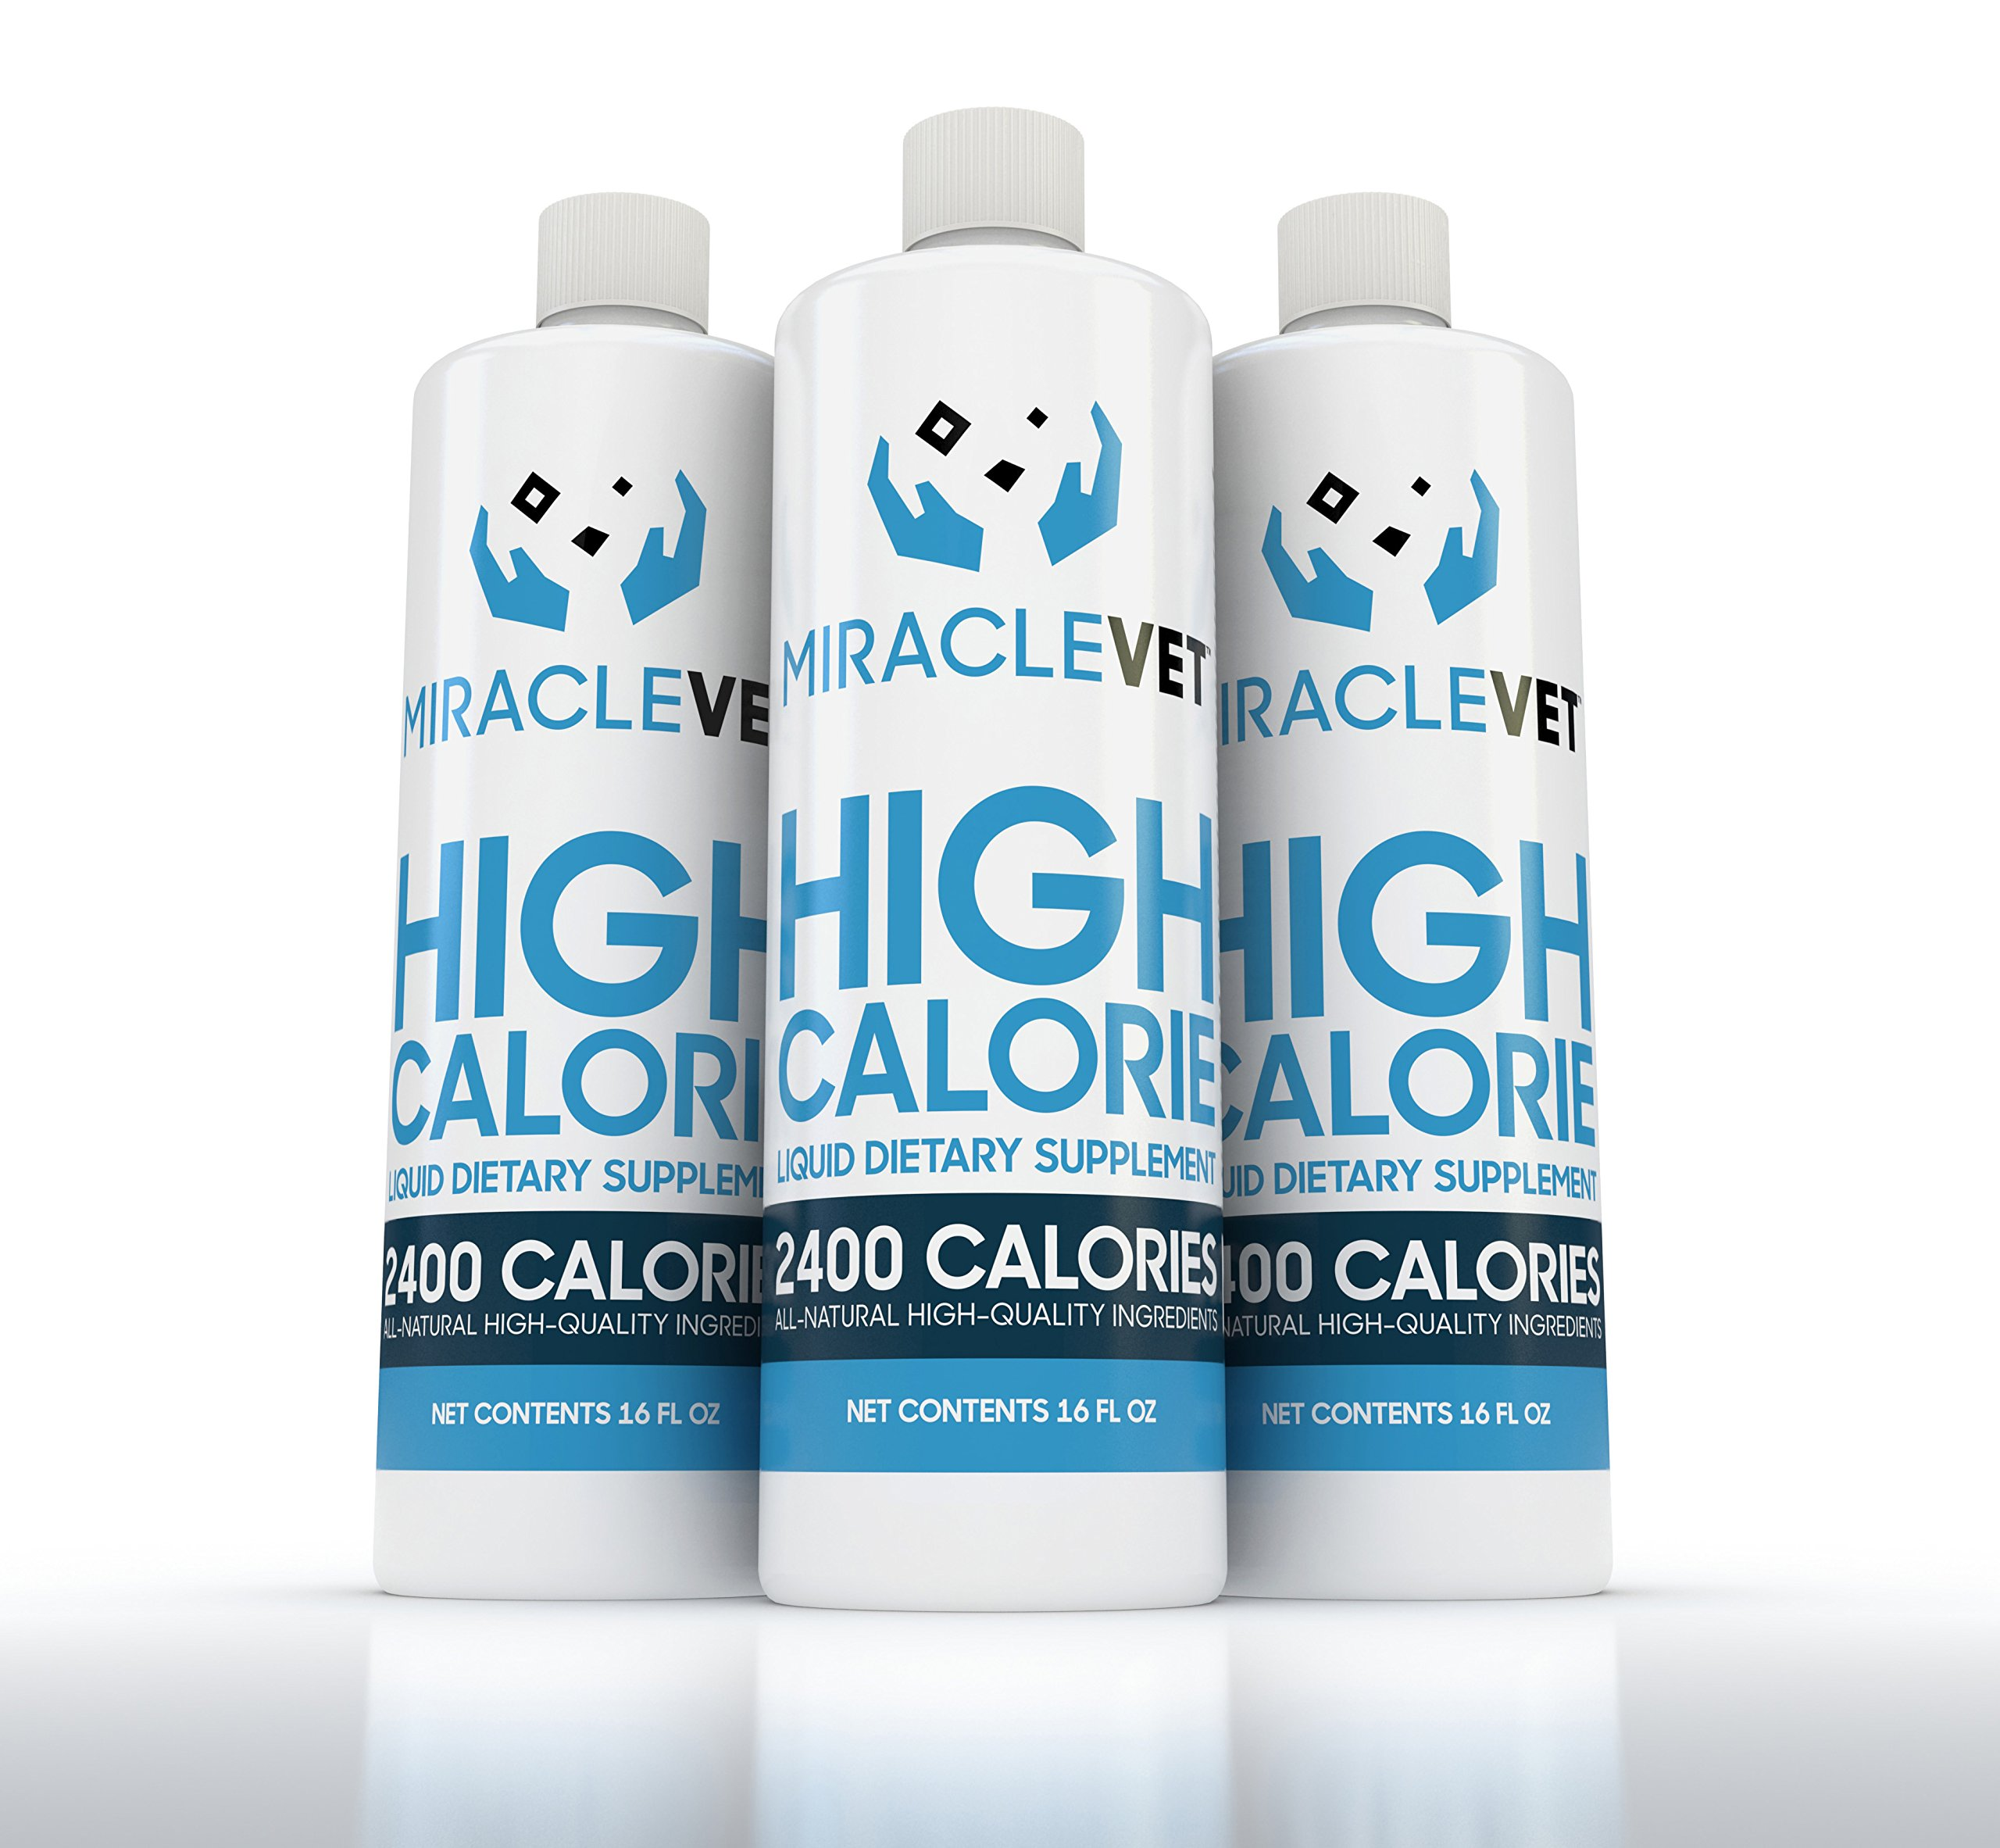 Miracle Vet High Calorie Weight Gainer for Dogs & Cats - 2,400 Calories (1 Bottle - 16 oz) by Miracle Vet